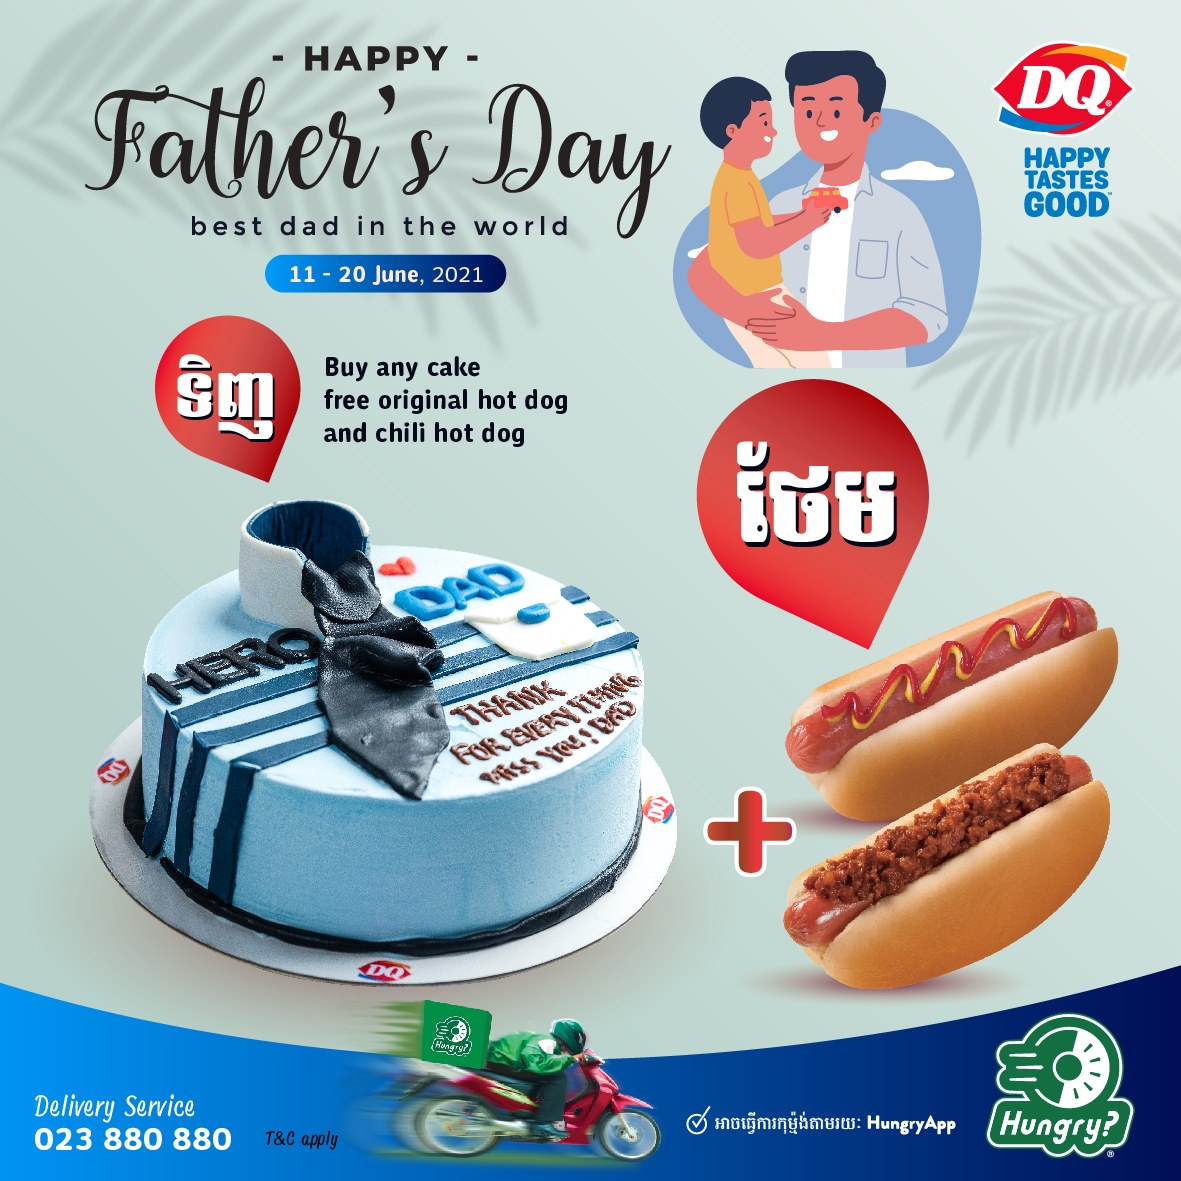 Dairy Queen – Happy Father's day